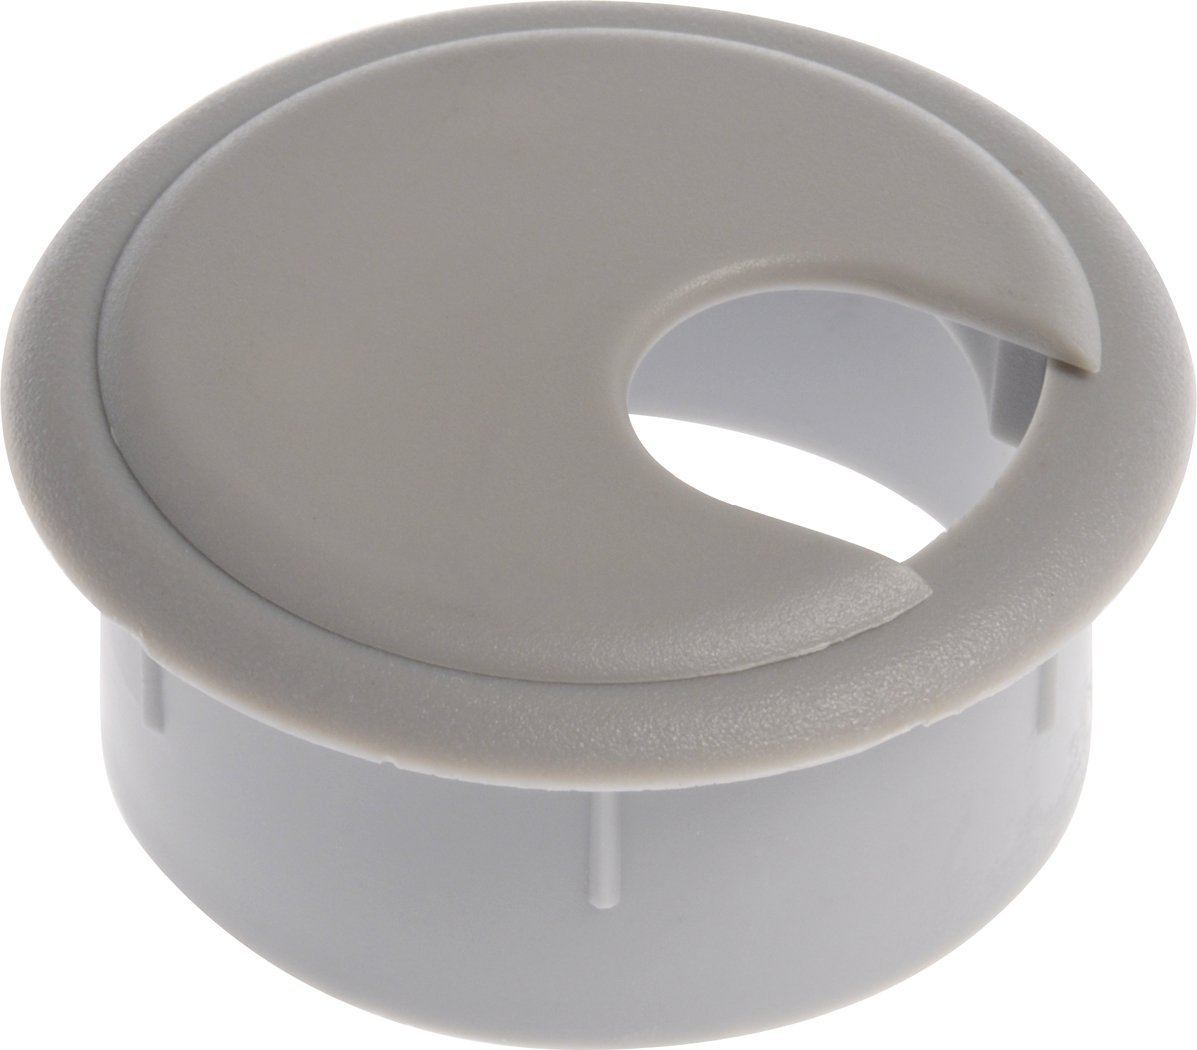 The Hillman Group 59340 Grey Grommet with Cap, 2-1/2-Inch, 2-Pack